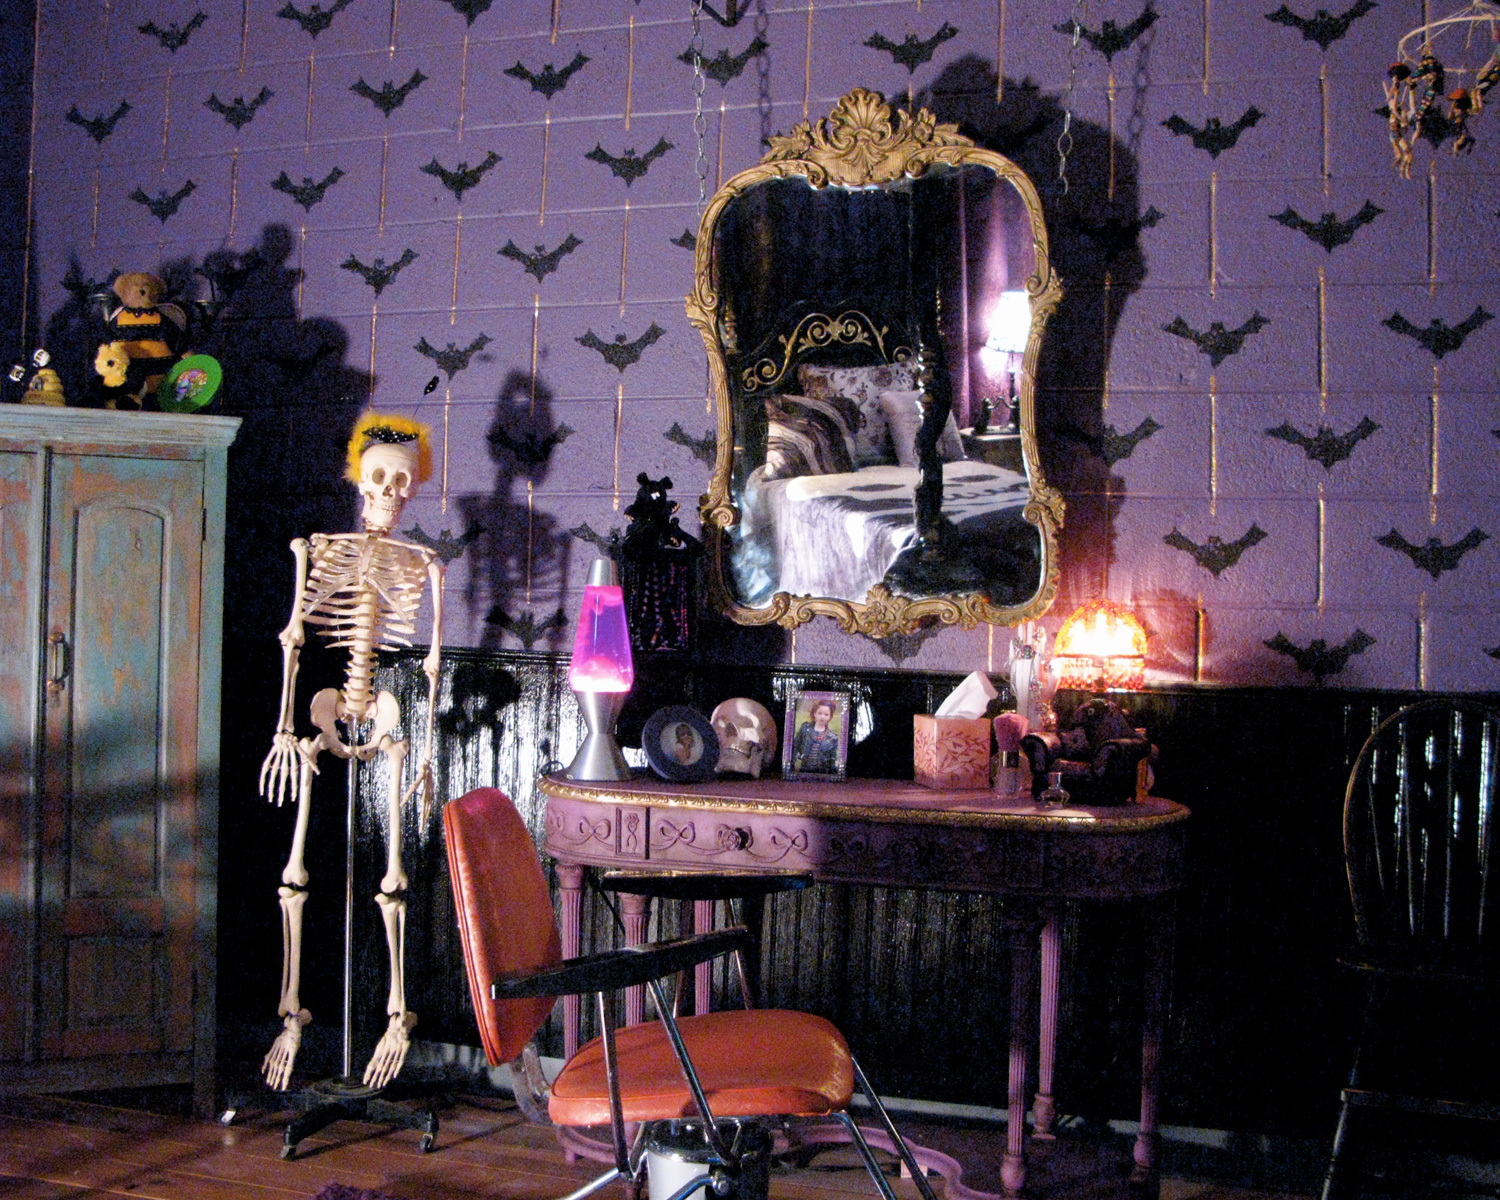 Reverse of Goth Bumble bee scout's (Kelly Gould) bedroom ( she's really into Halloween, costumes and makeup)